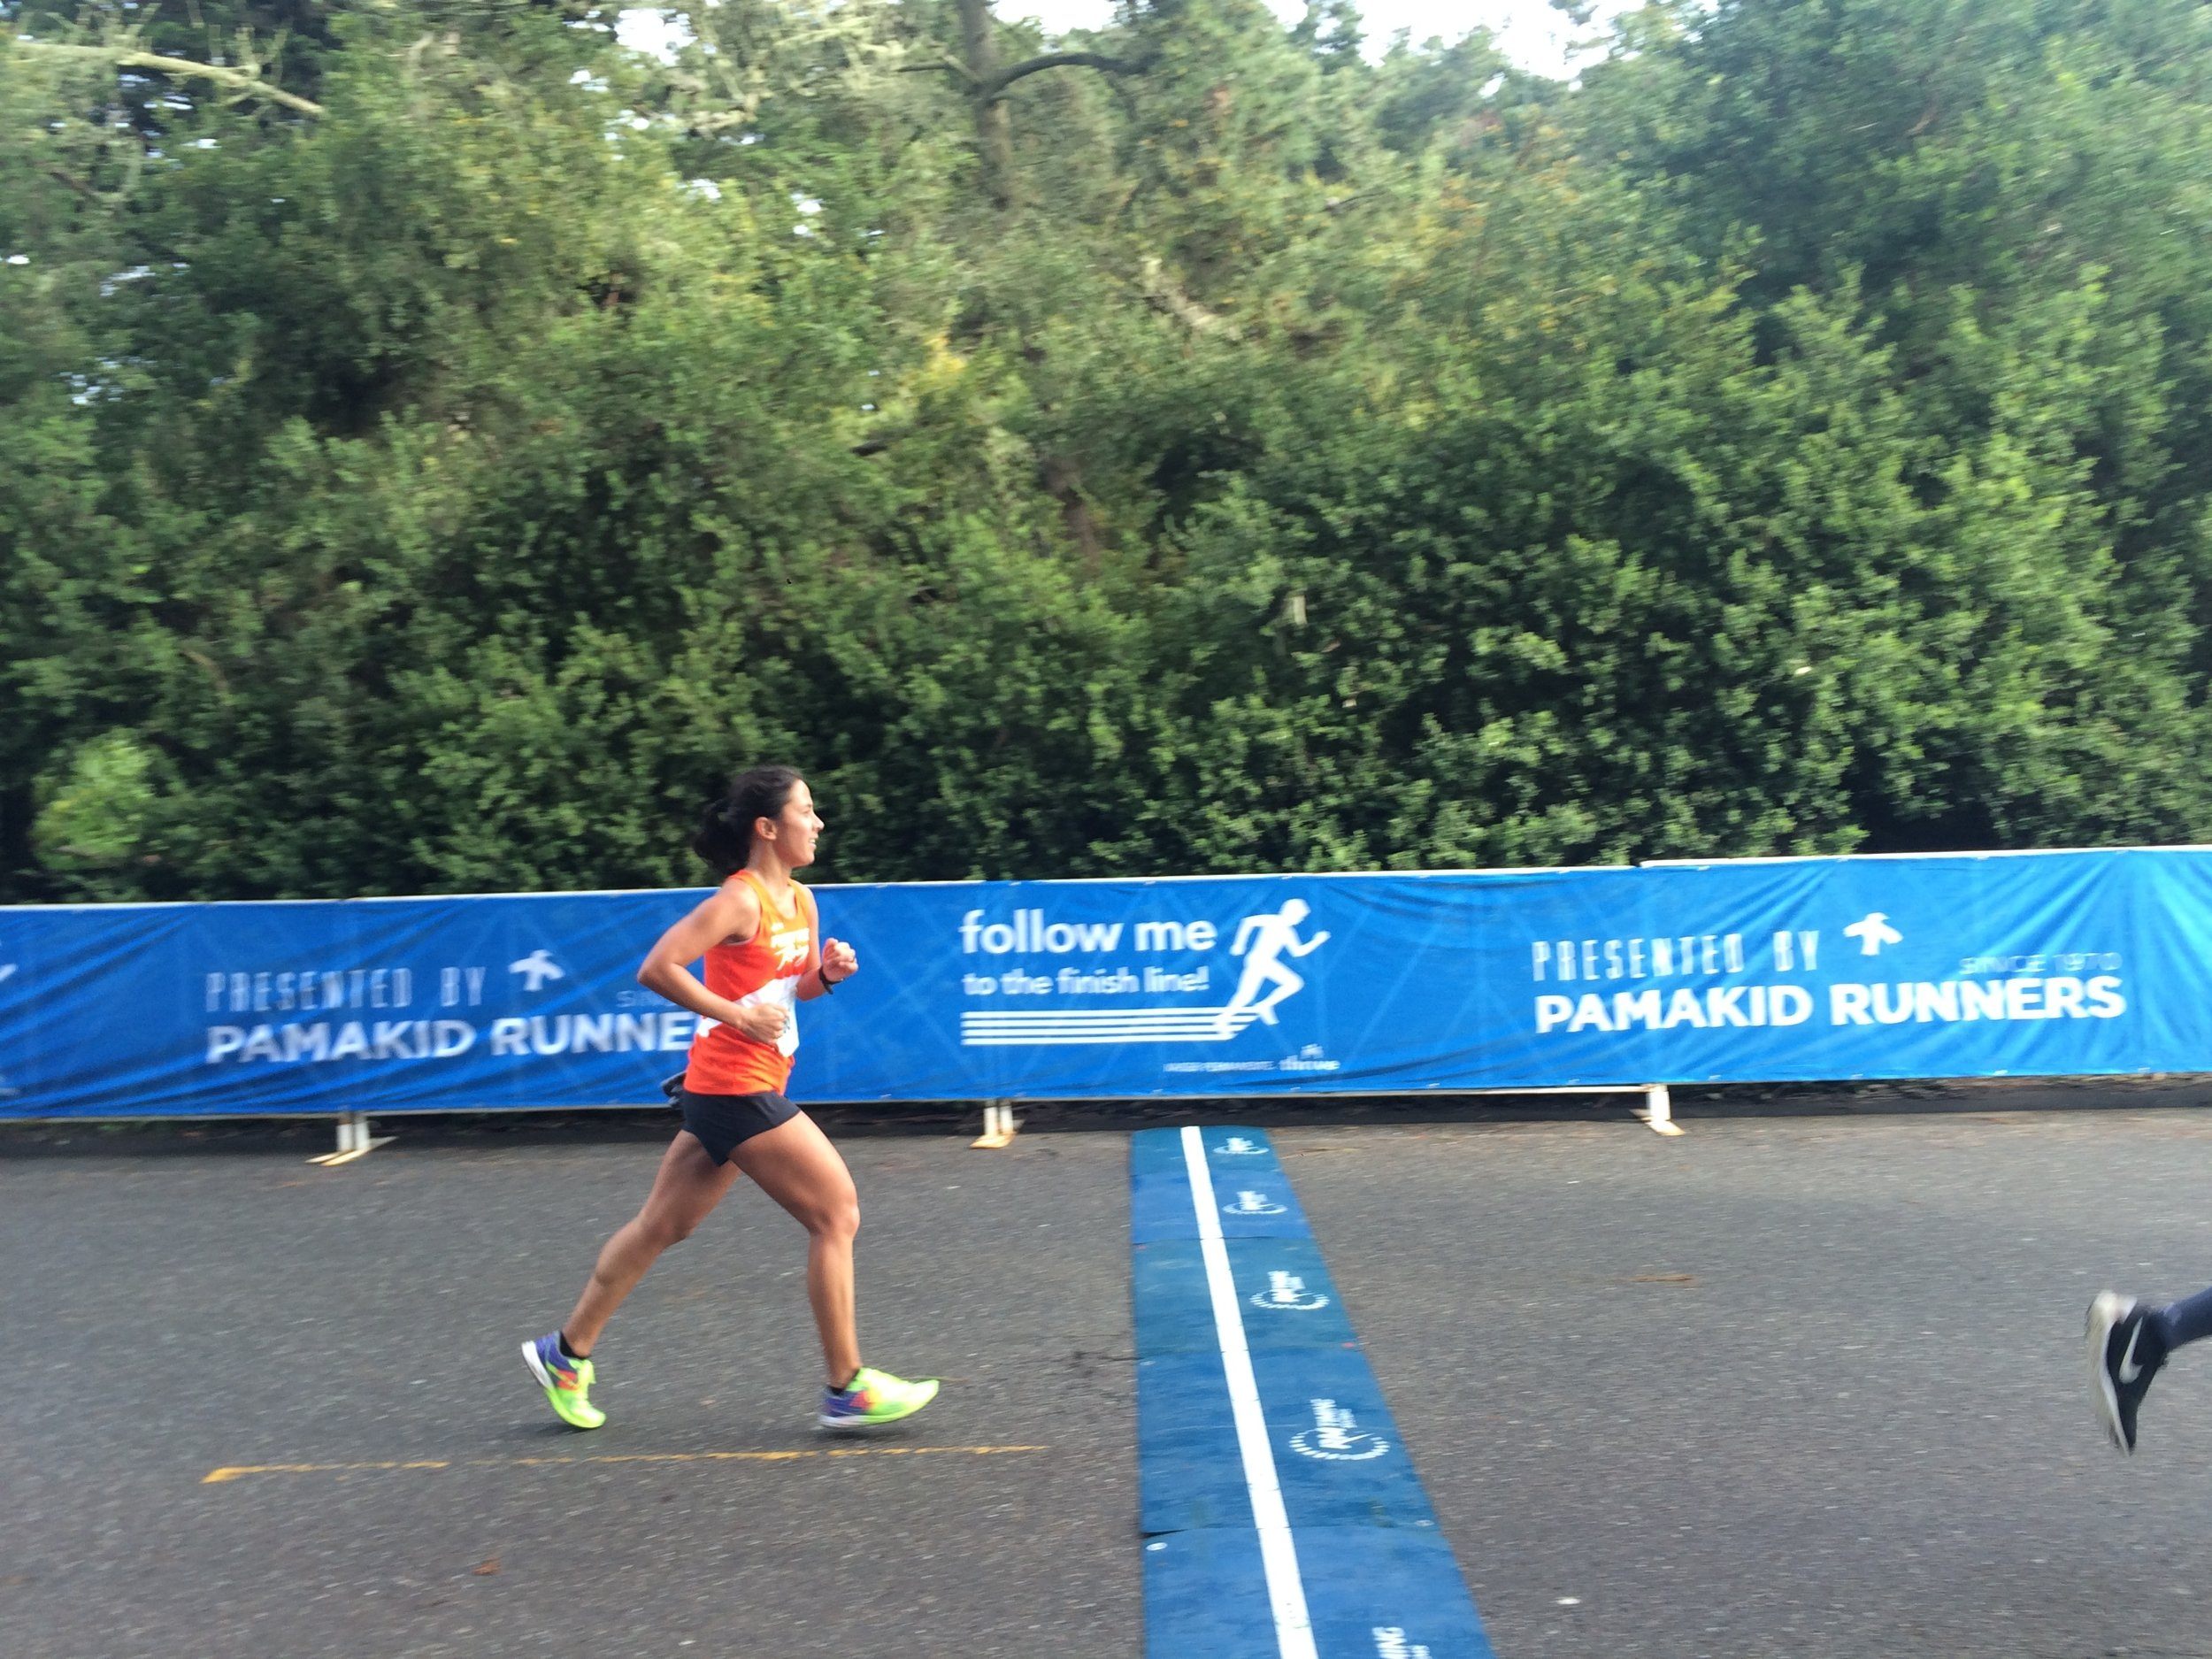 Thanks  Mike  for capturing me finishing. Never have I loved a finish line so much. Lol